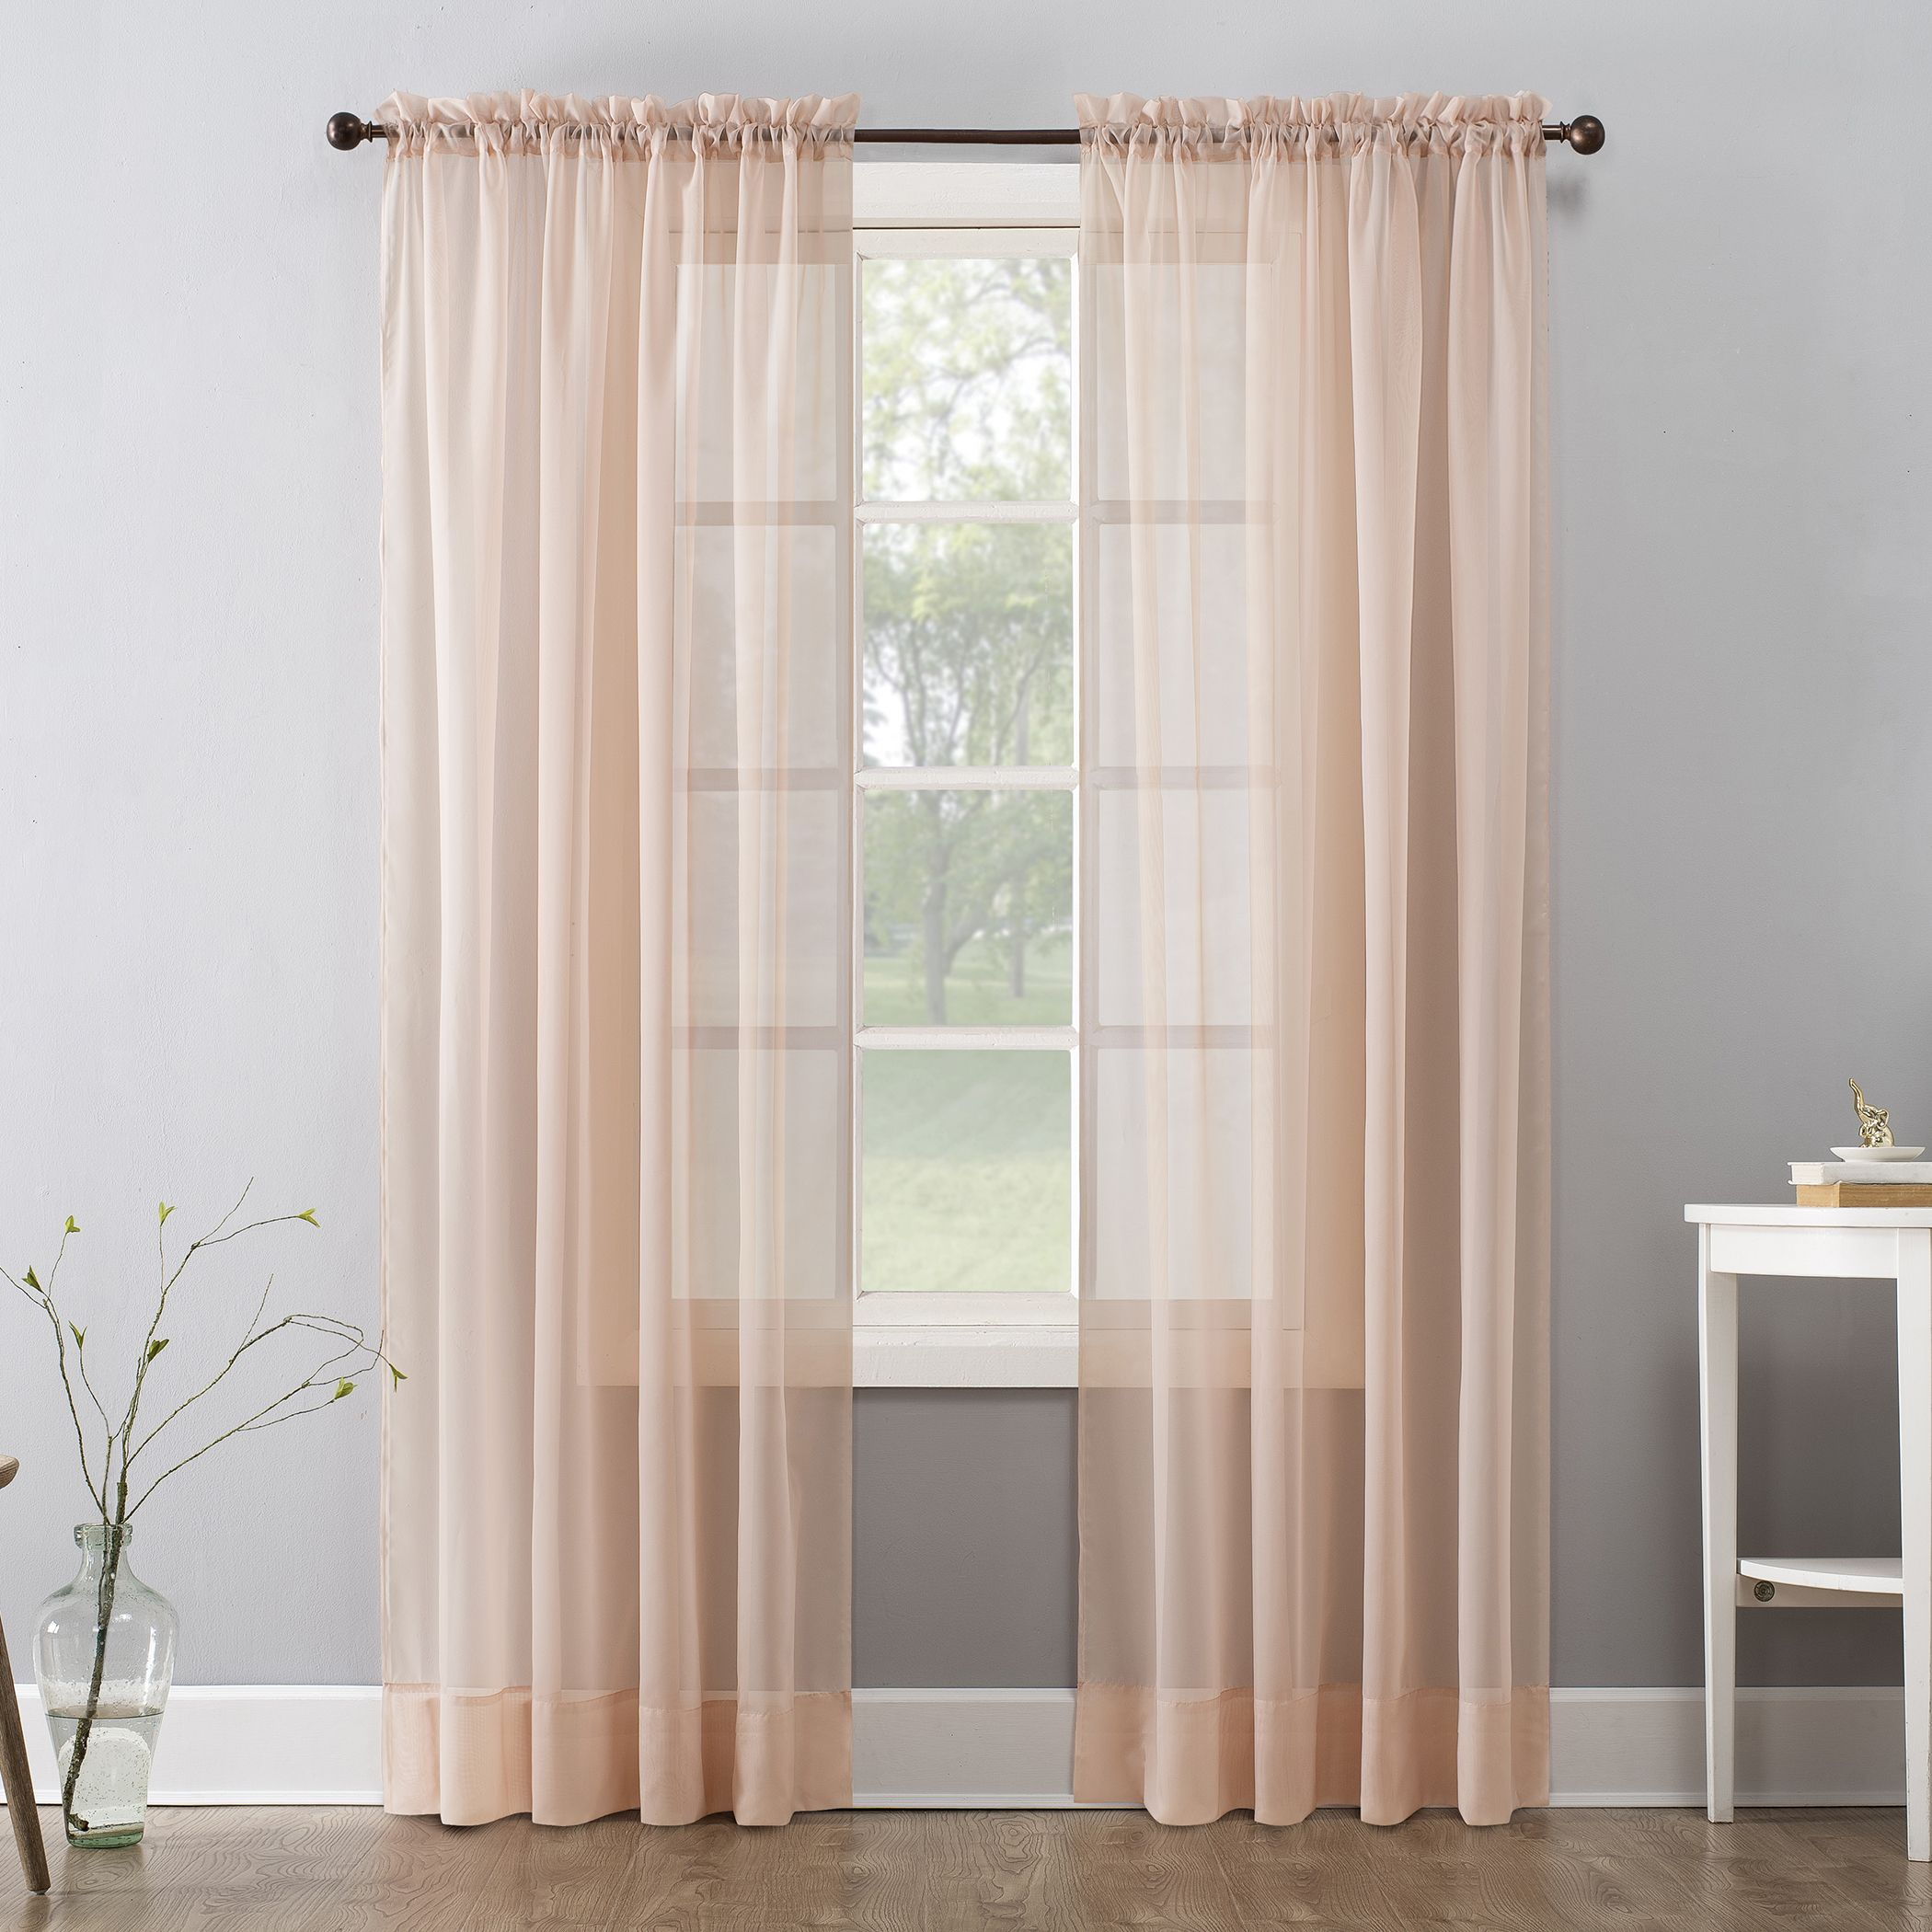 Home Panel Curtains Curtains Voile Curtains